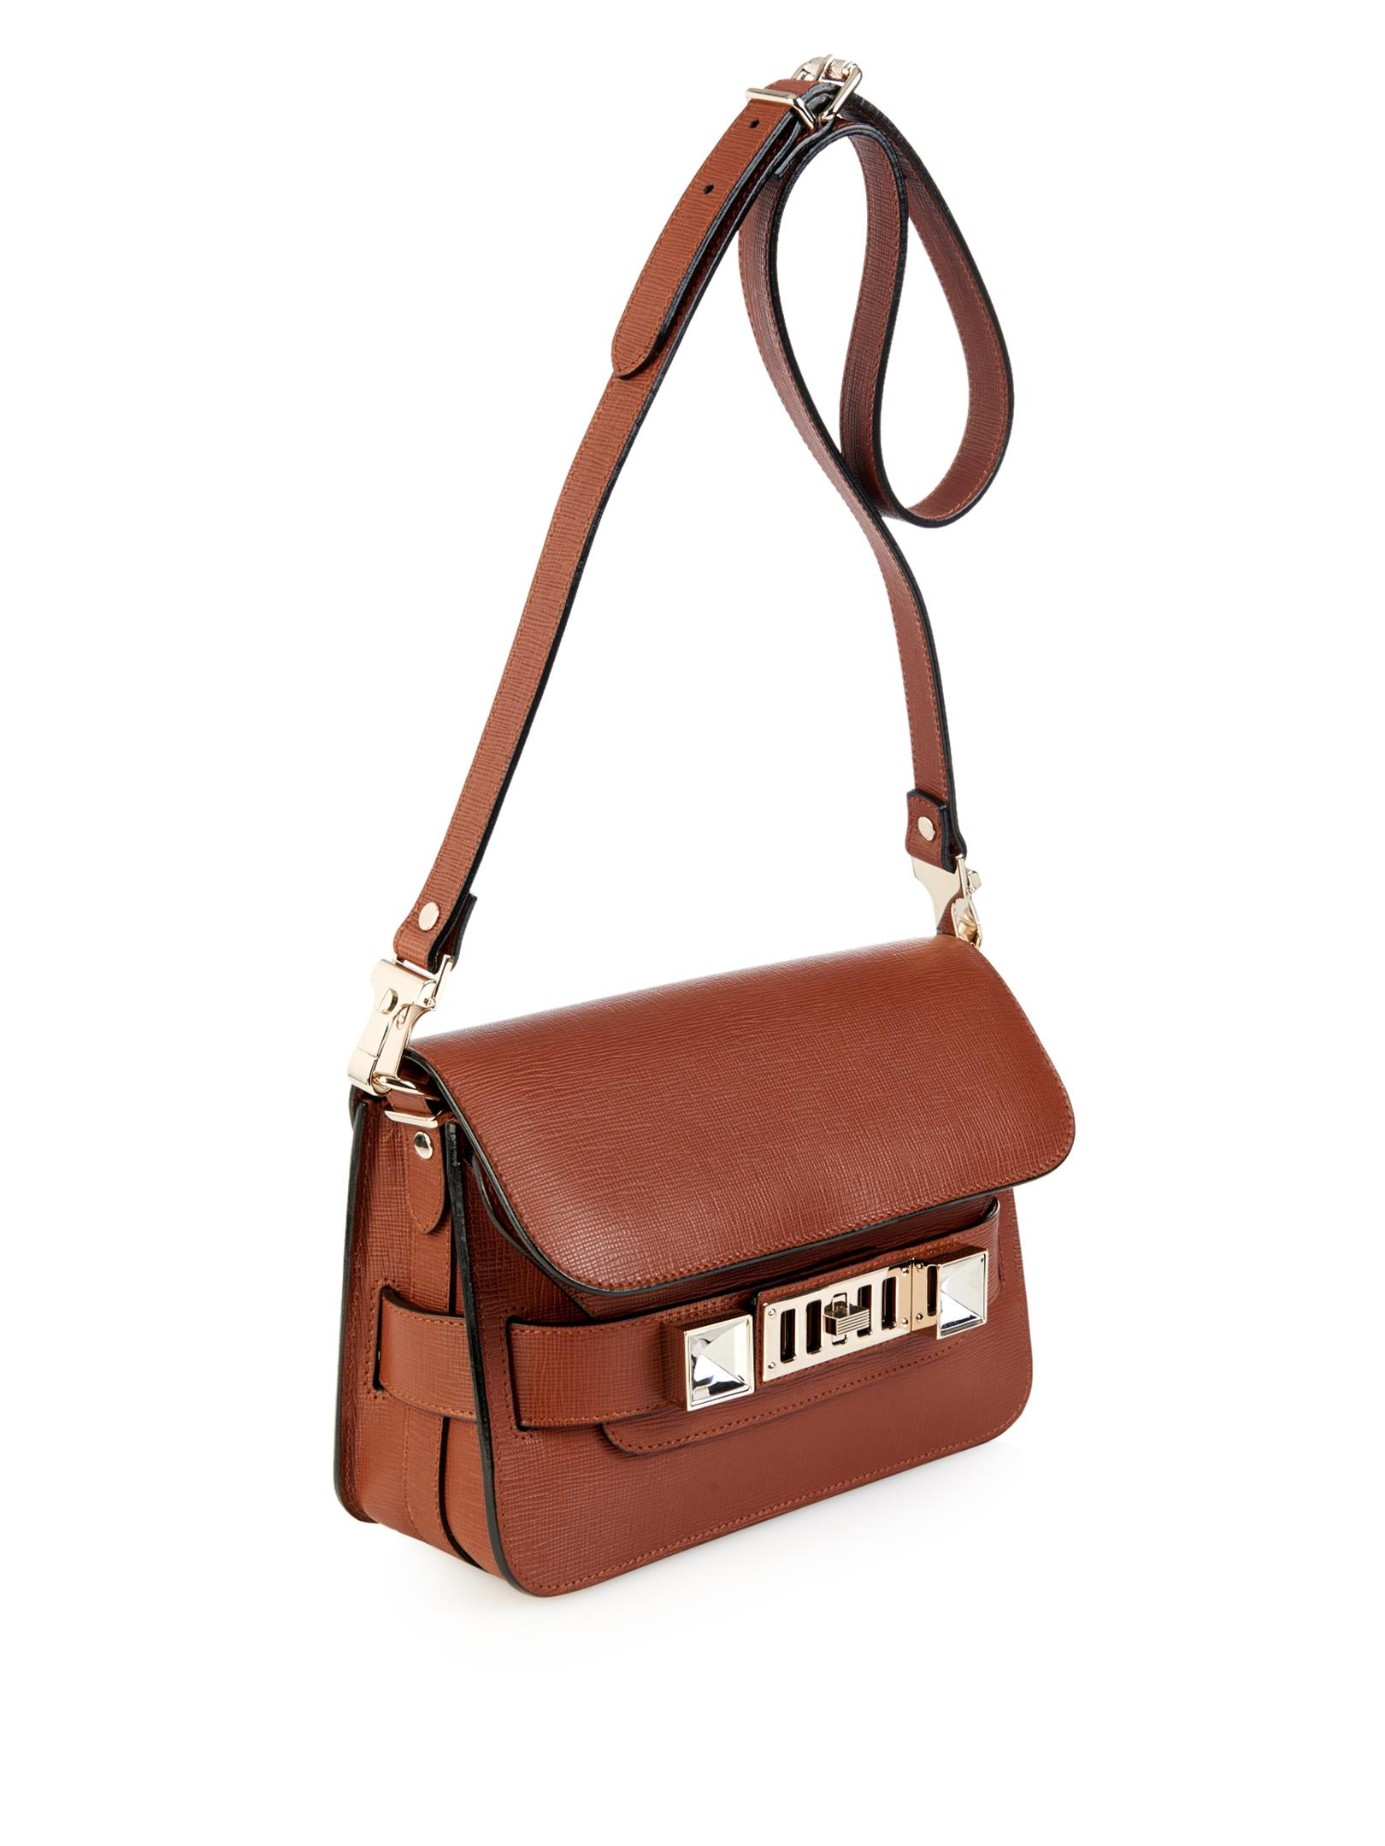 af256f750bf5 Lyst - Proenza Schouler Ps11 Mini Classic Leather Shoulder Bag in Brown